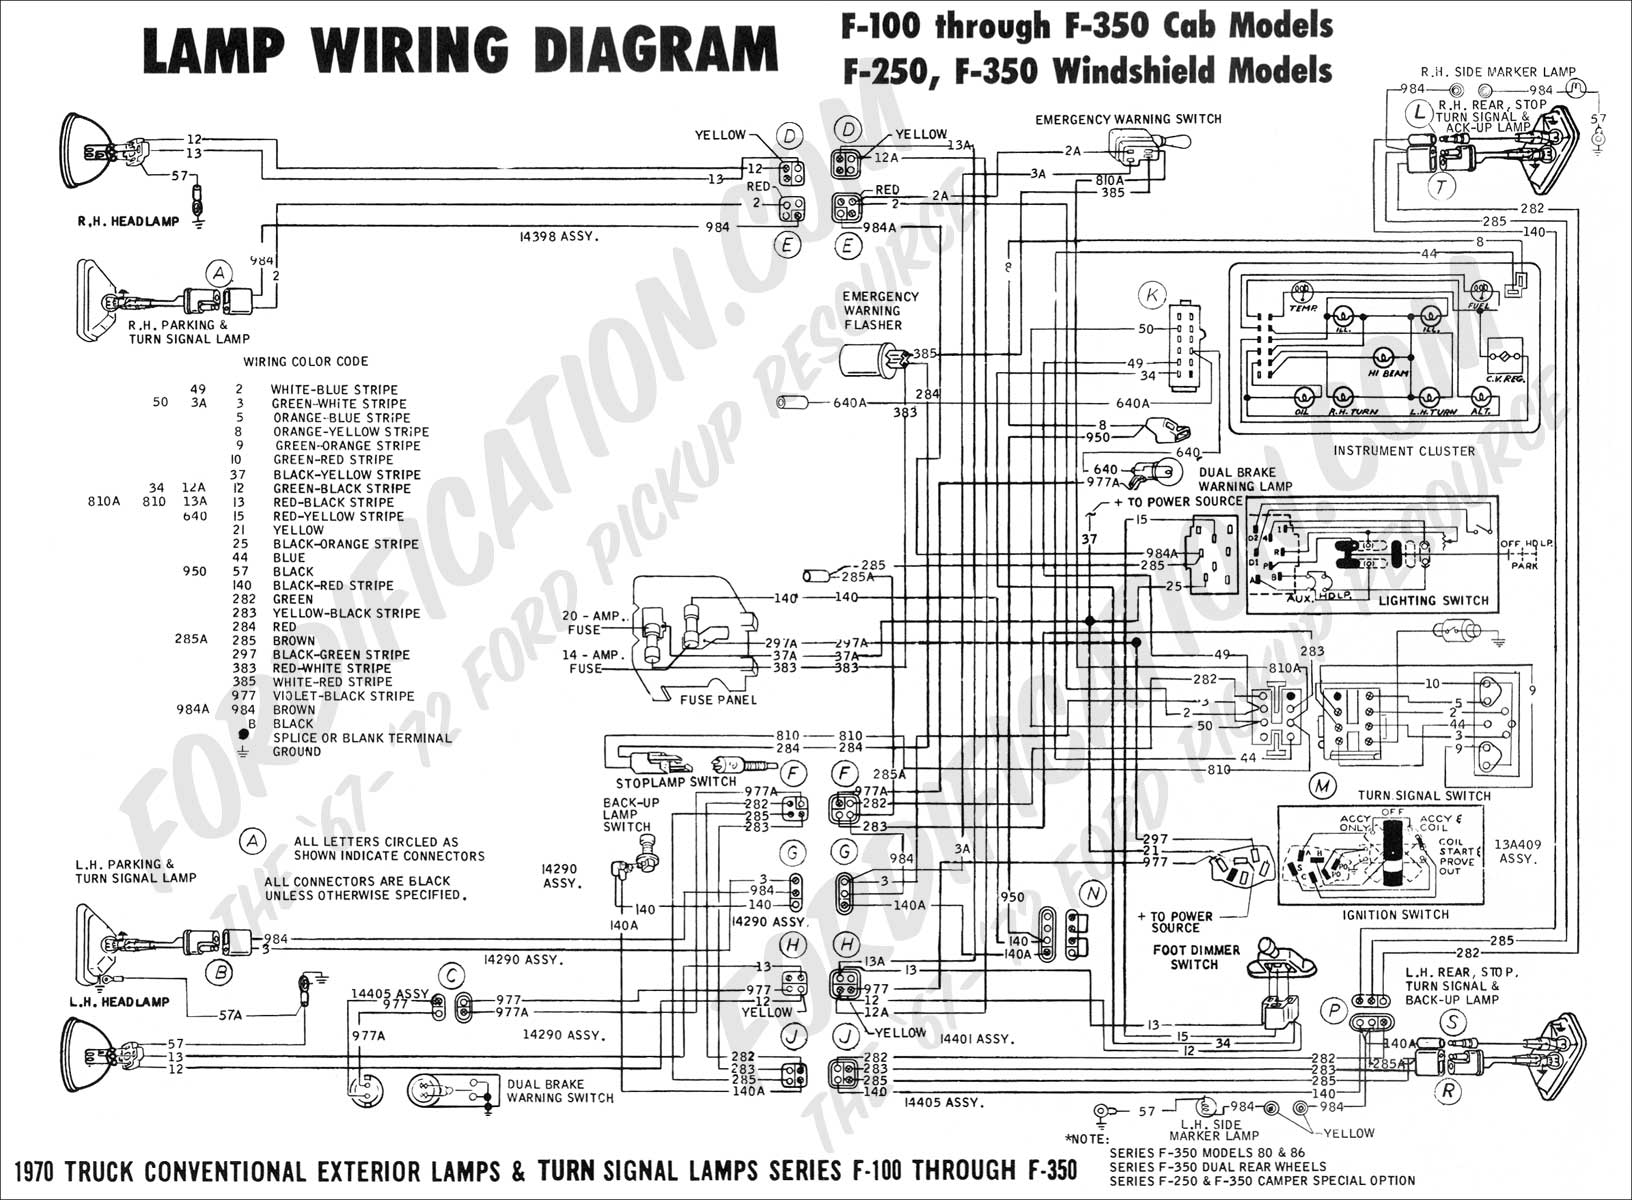 f250 ford wiring diagram wiring diagram for you all u2022 rh onlinetuner co Motor for 2003 F 150 Fuse Diagram for 2004 F 150